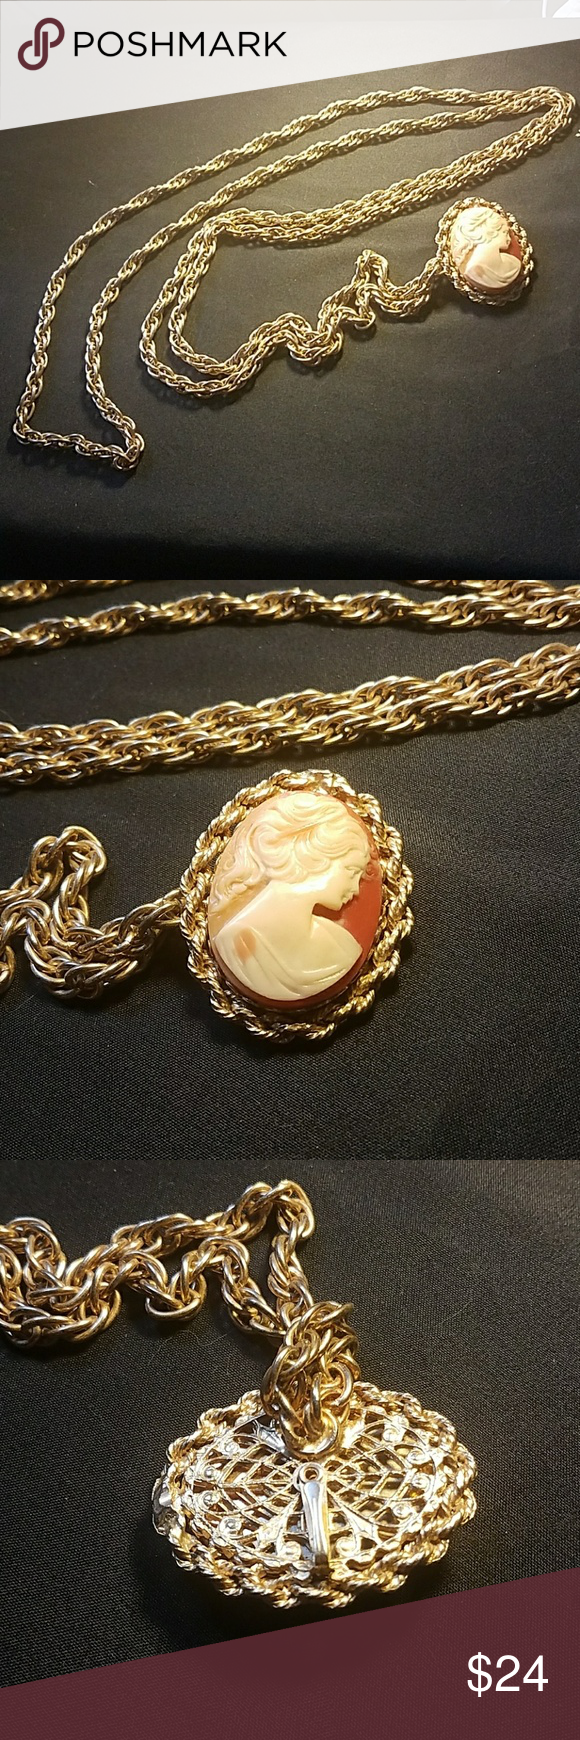 Vintage Cameo Necklace with Long Gold Chain Another beautiful item ...